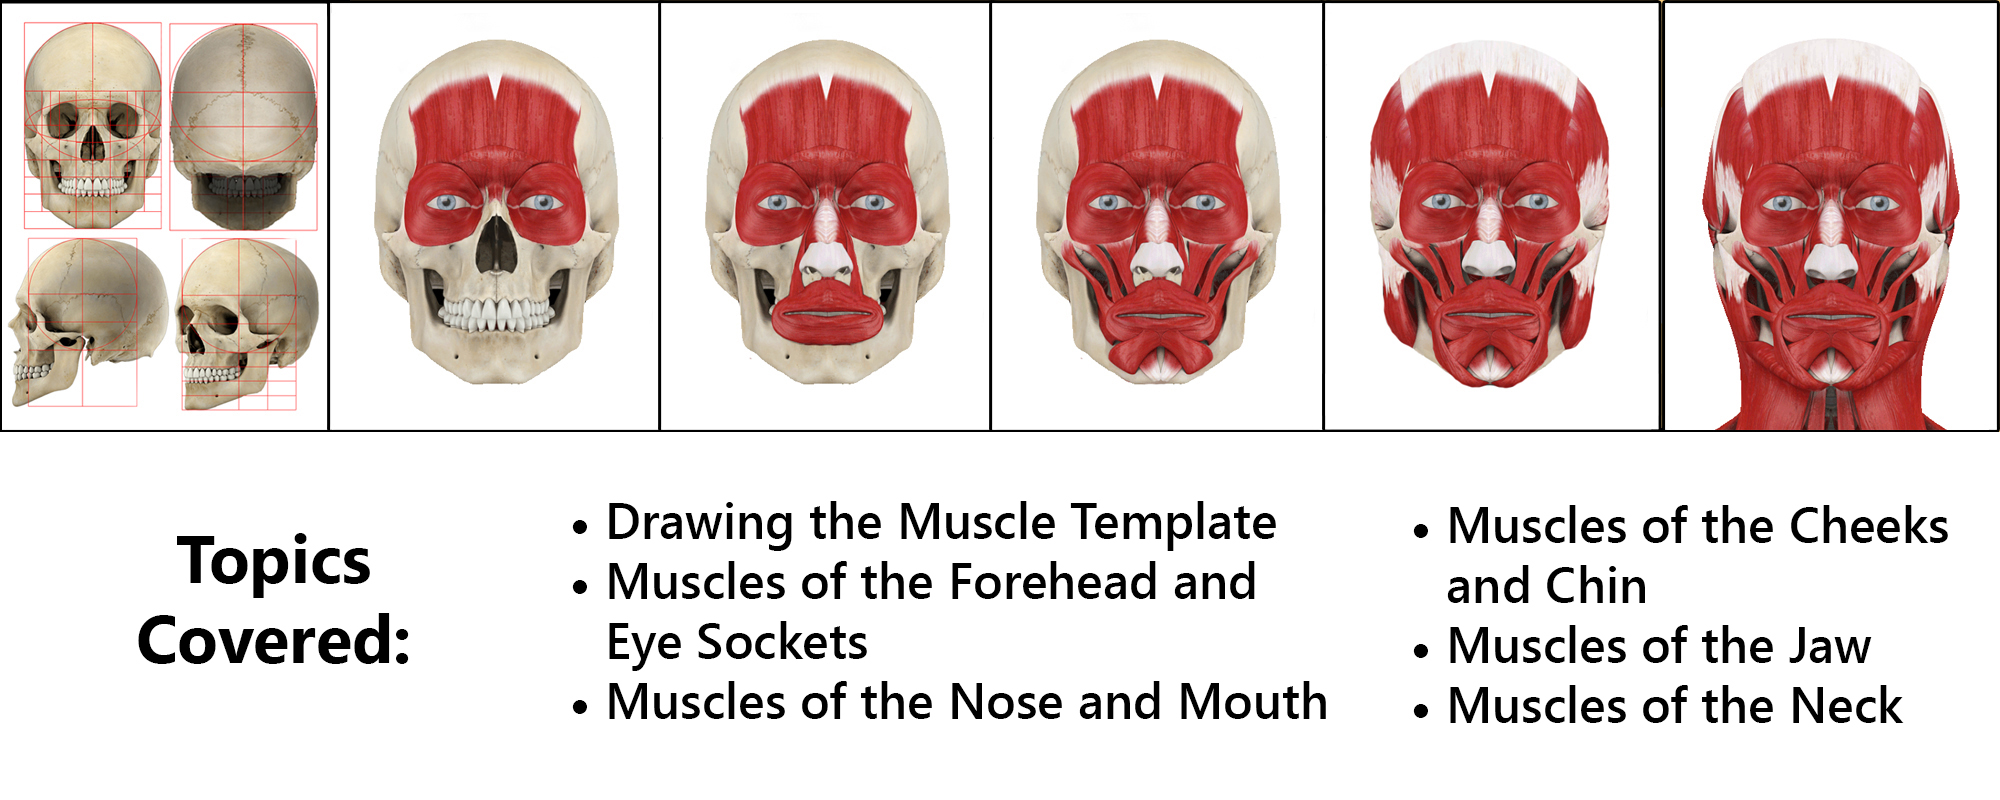 drawing-the-muscles-of-the-face-topics-covered